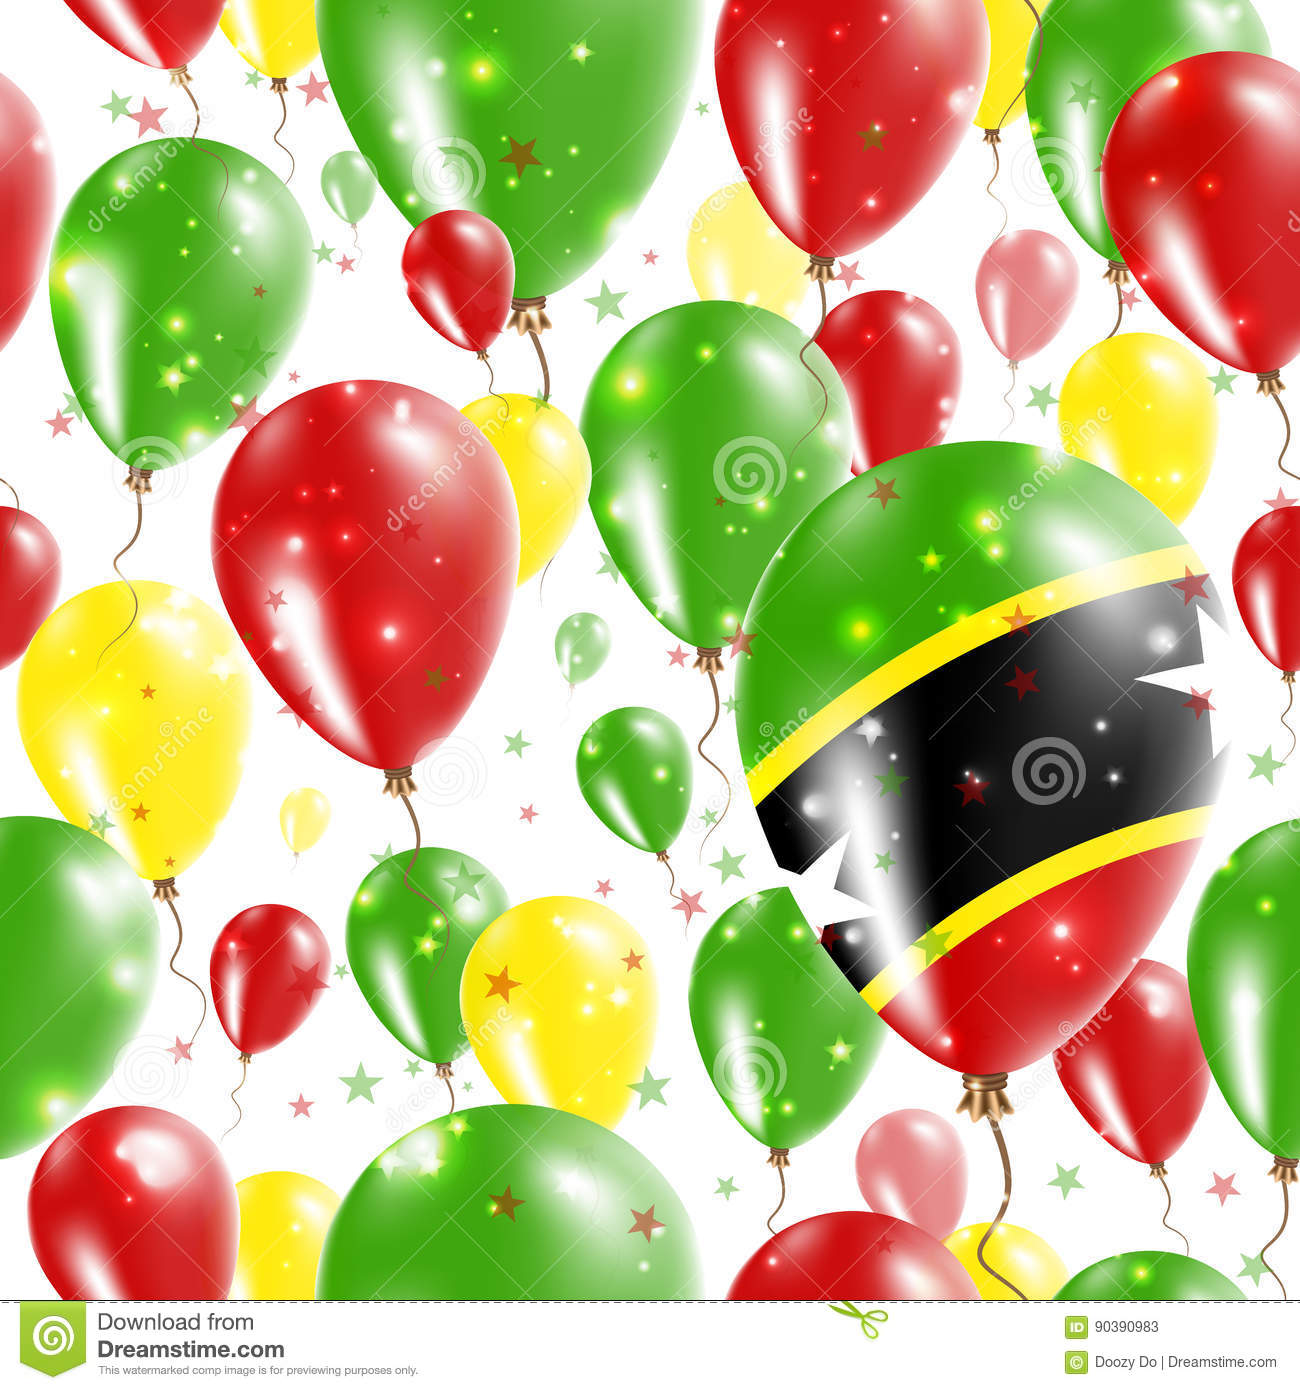 Who Flies To St Kitts: St. Kitts And Nevis Independence Day Seamless. Stock